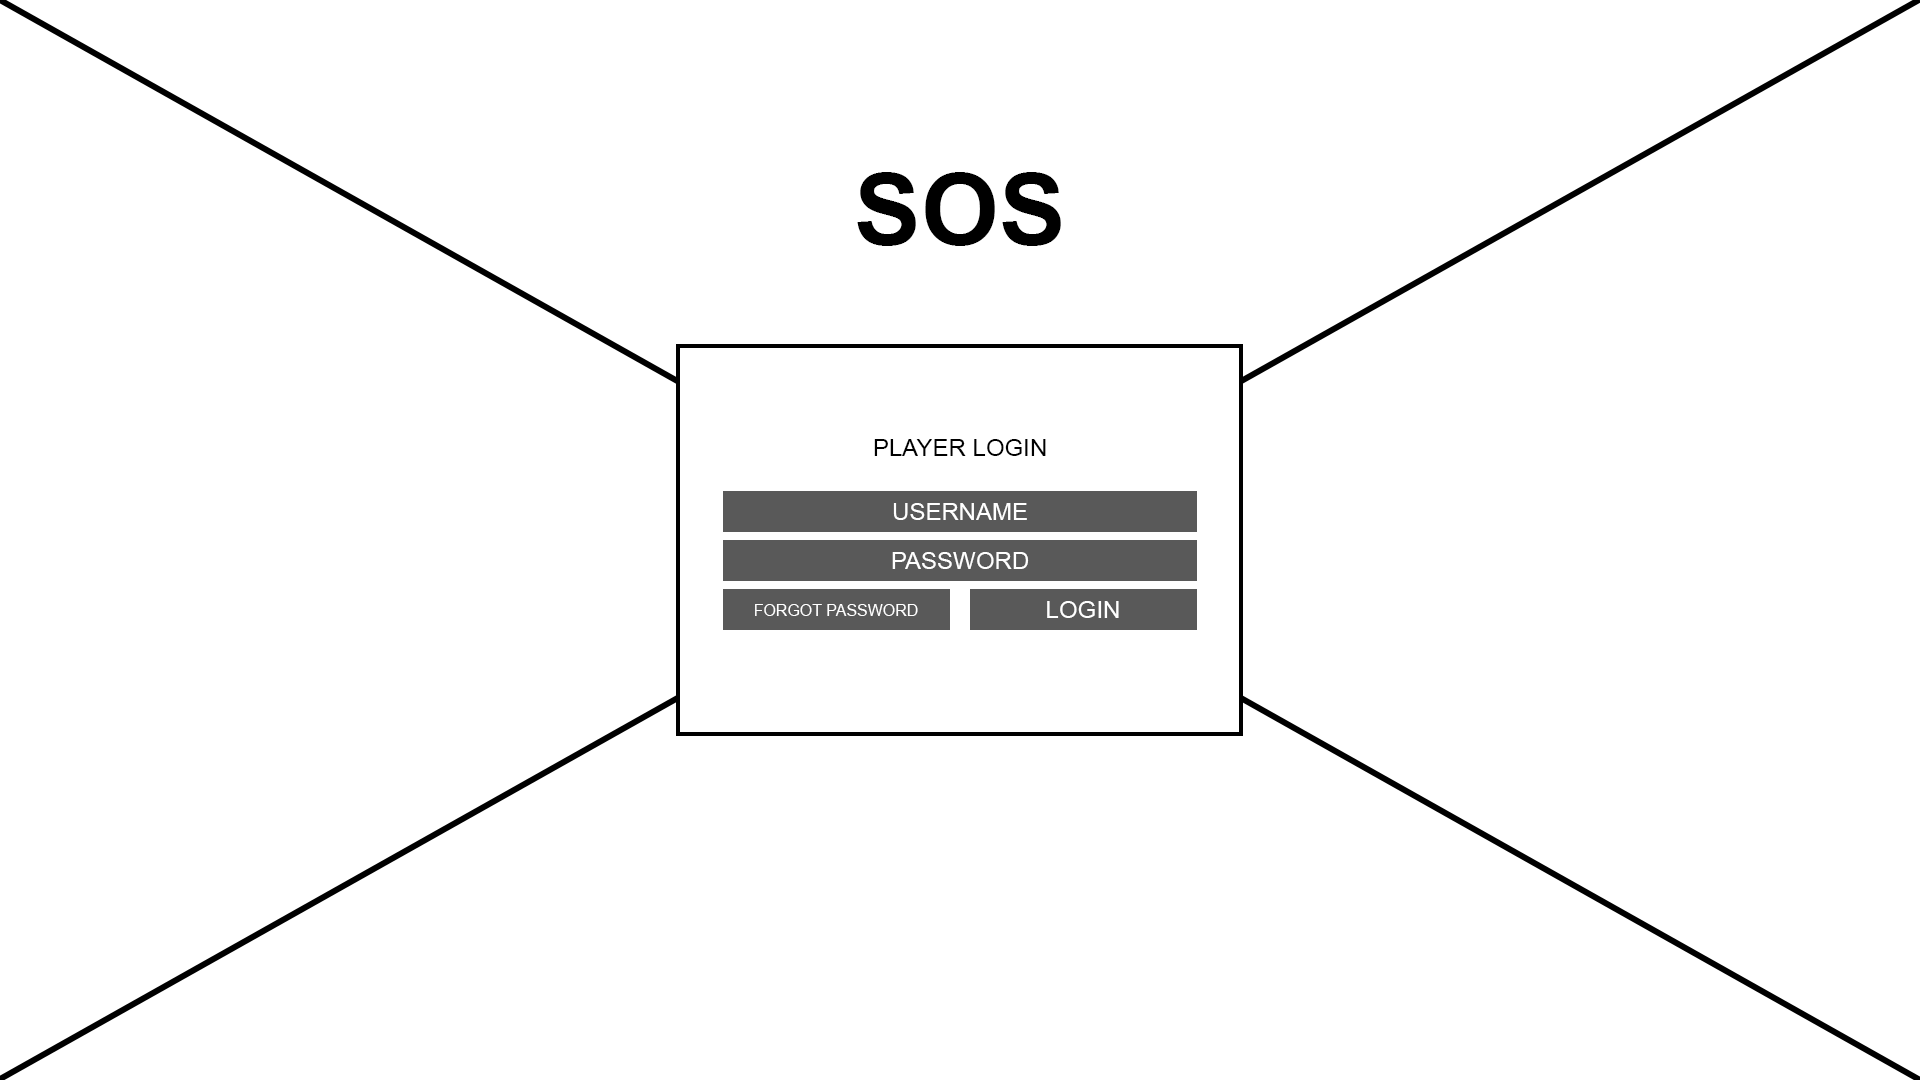 SOS_GameFlow_Wireframes_v4_00_02